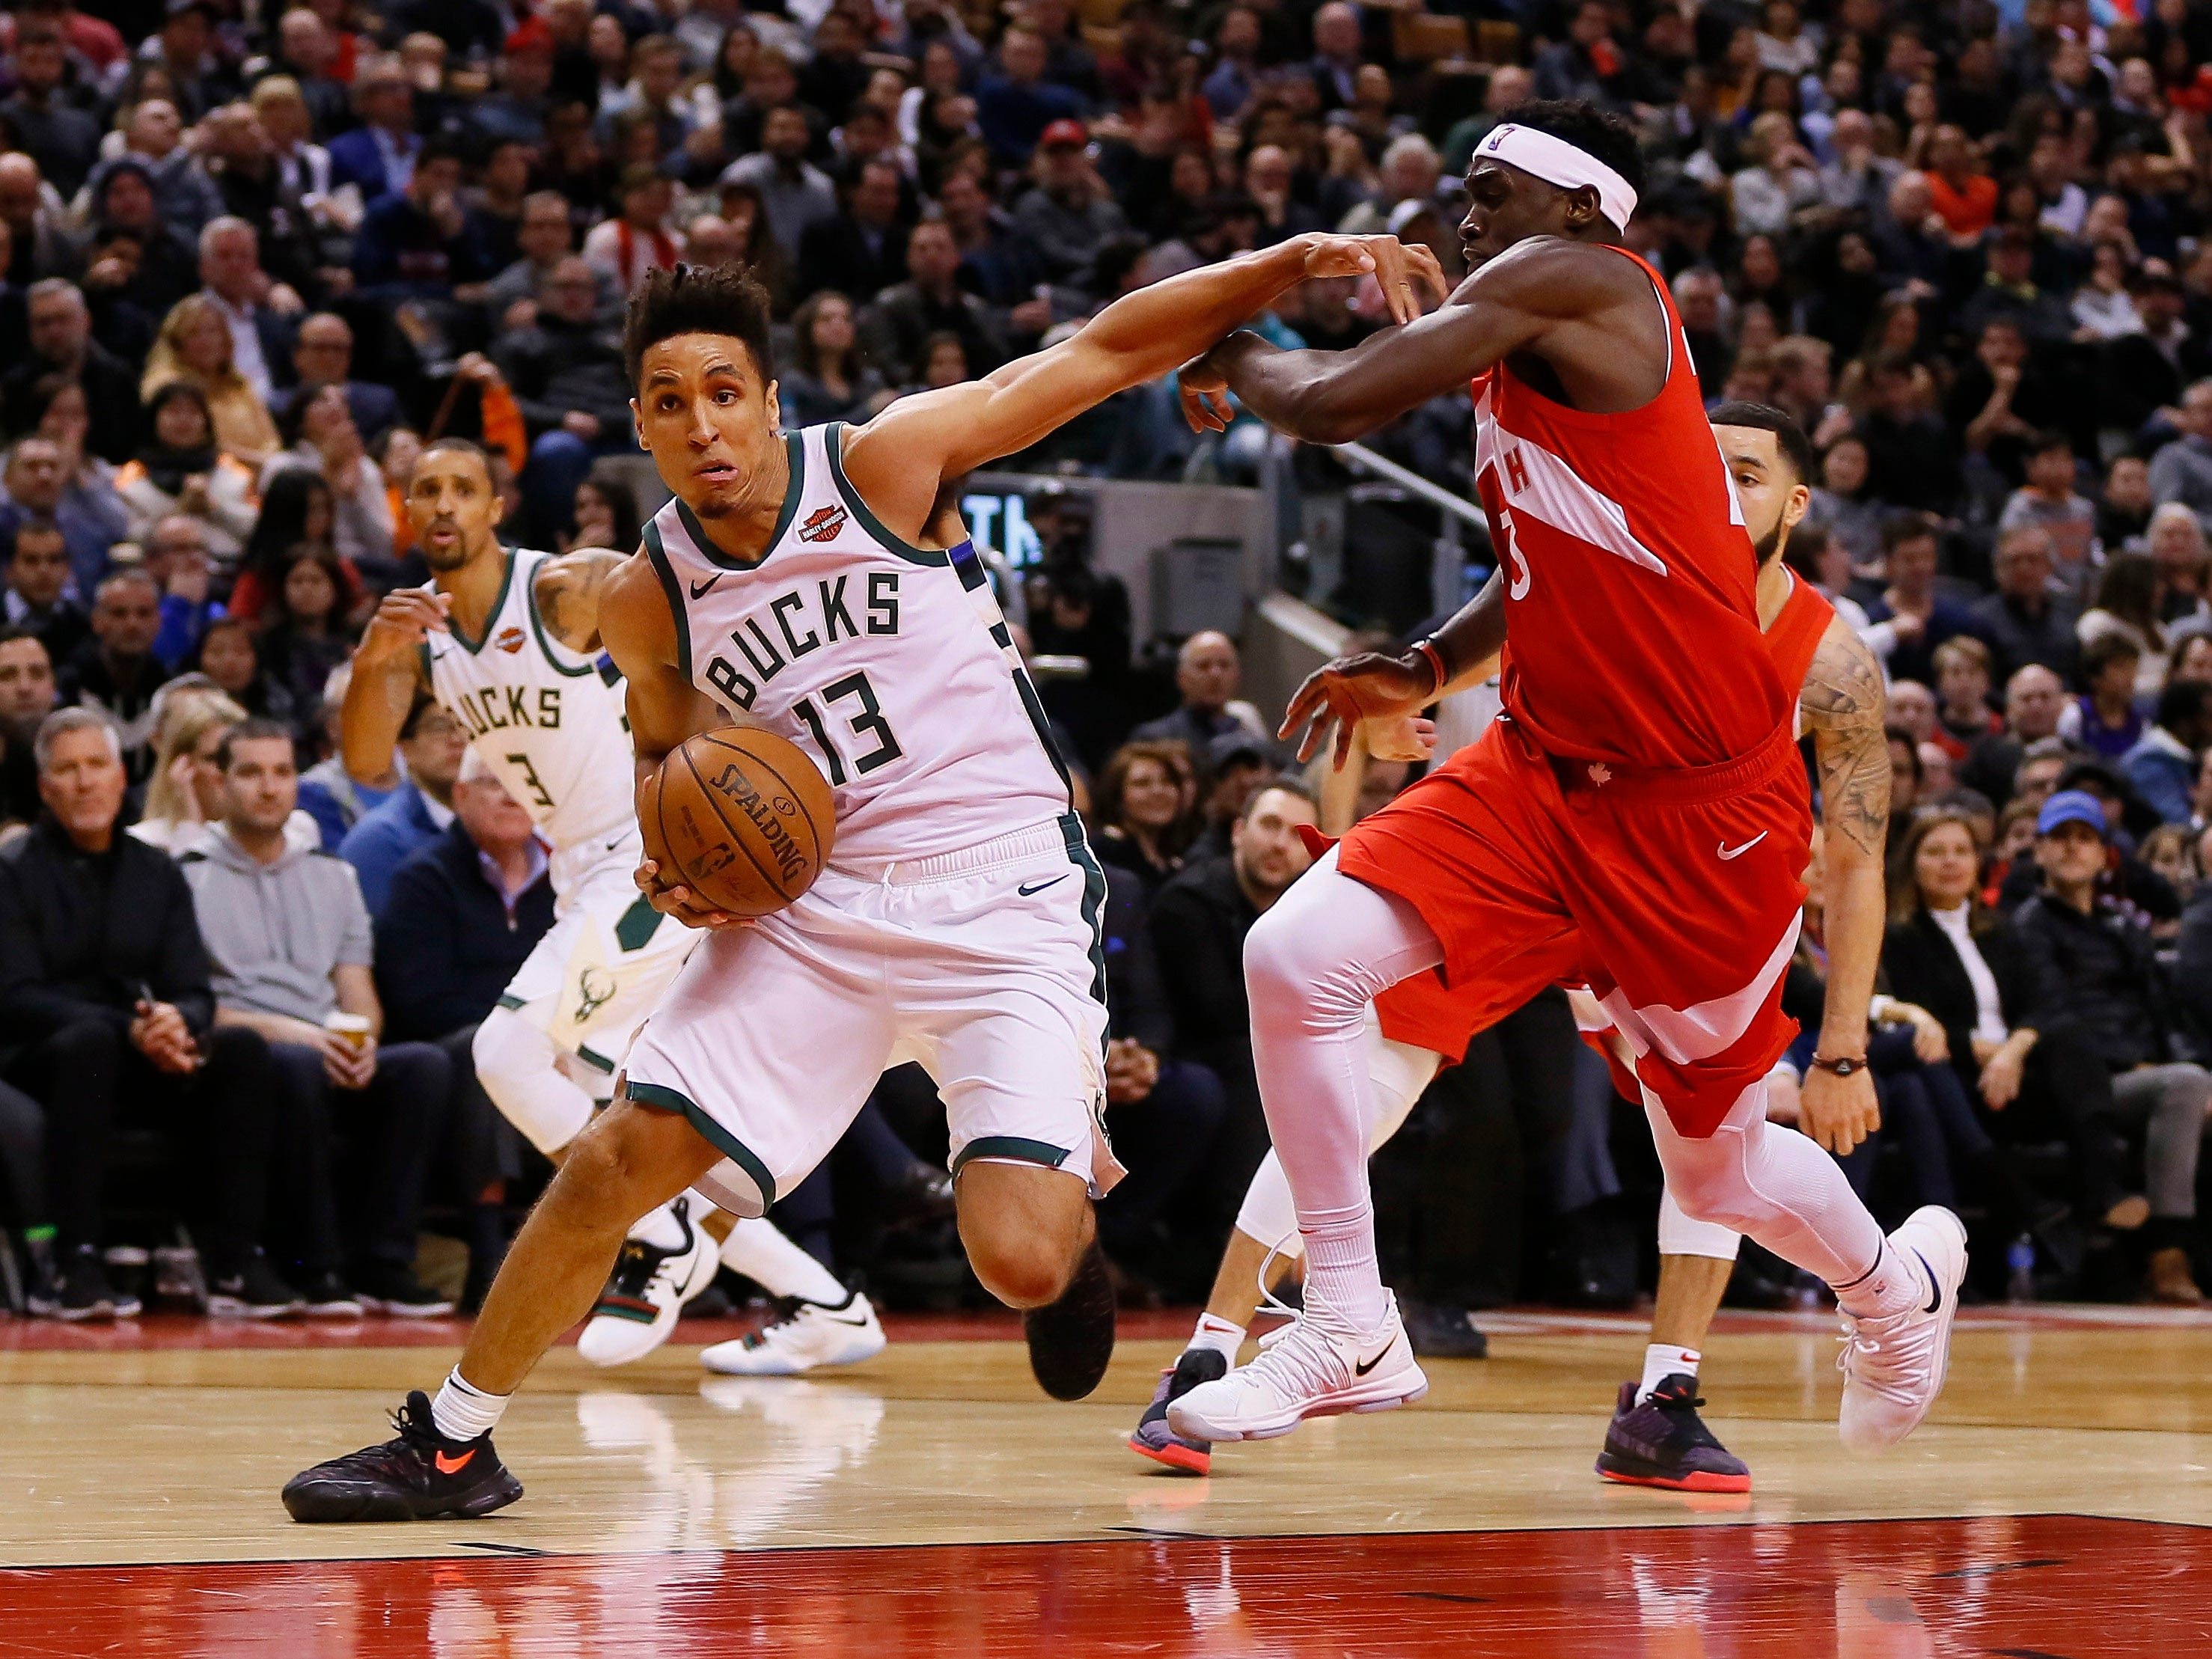 Bucks guard Malcolm Brogdon gets past Raptors forward Pascal Siakam as he heads to the basket during second-half action on Thursday night.